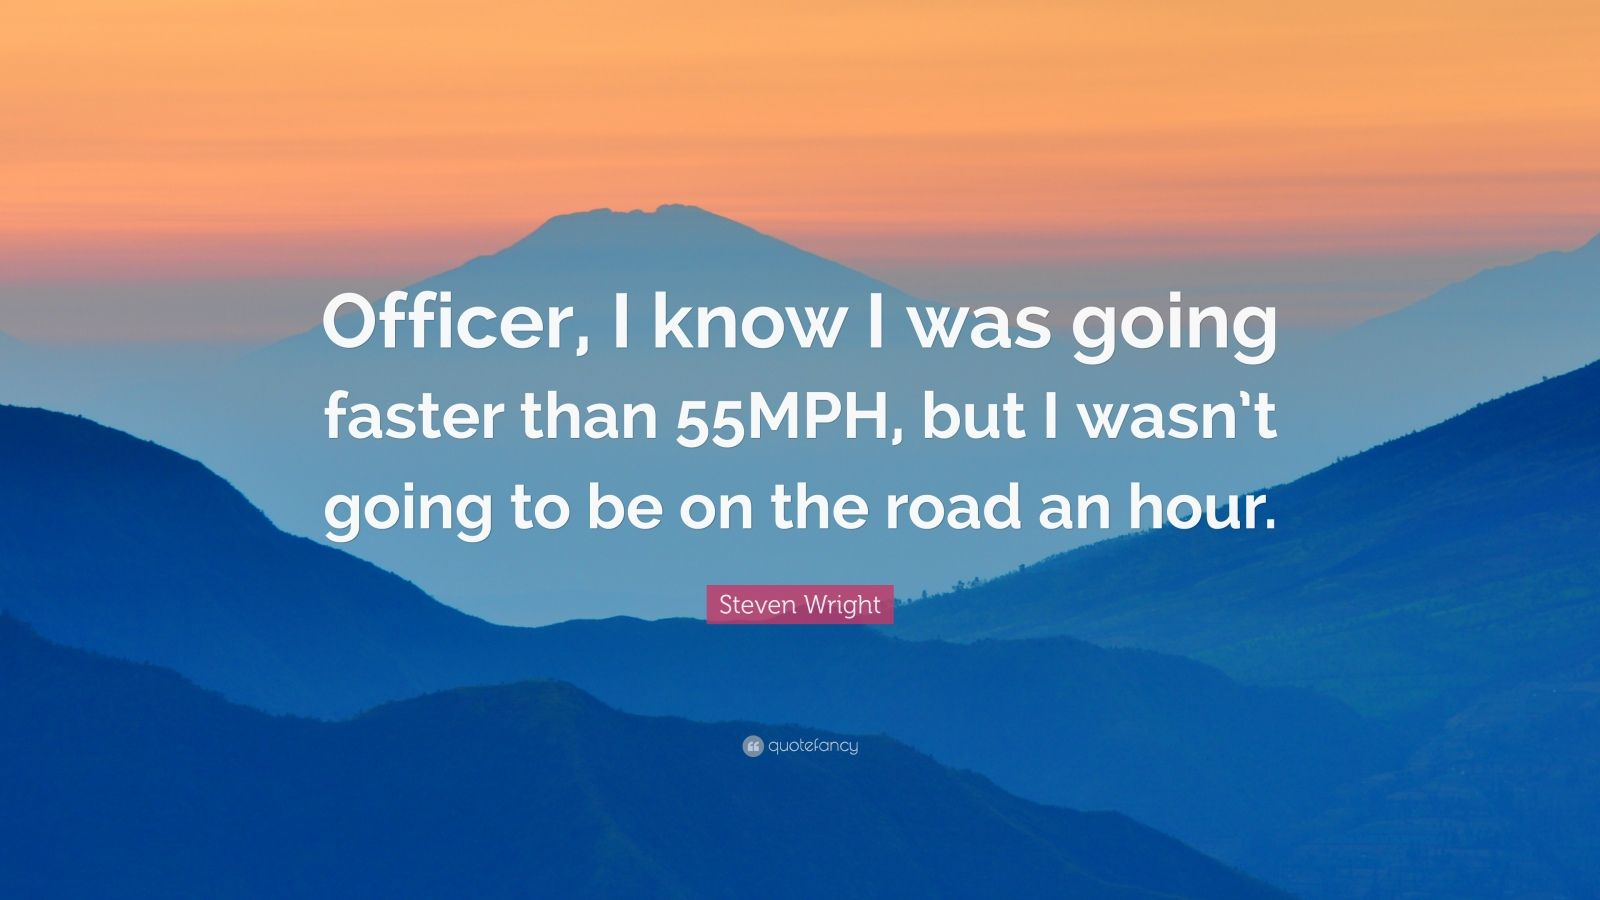 """Steven Wright Quote: """"Officer, I know I was going faster than 55MPH, but I wasn't going to be on the road an hour."""""""